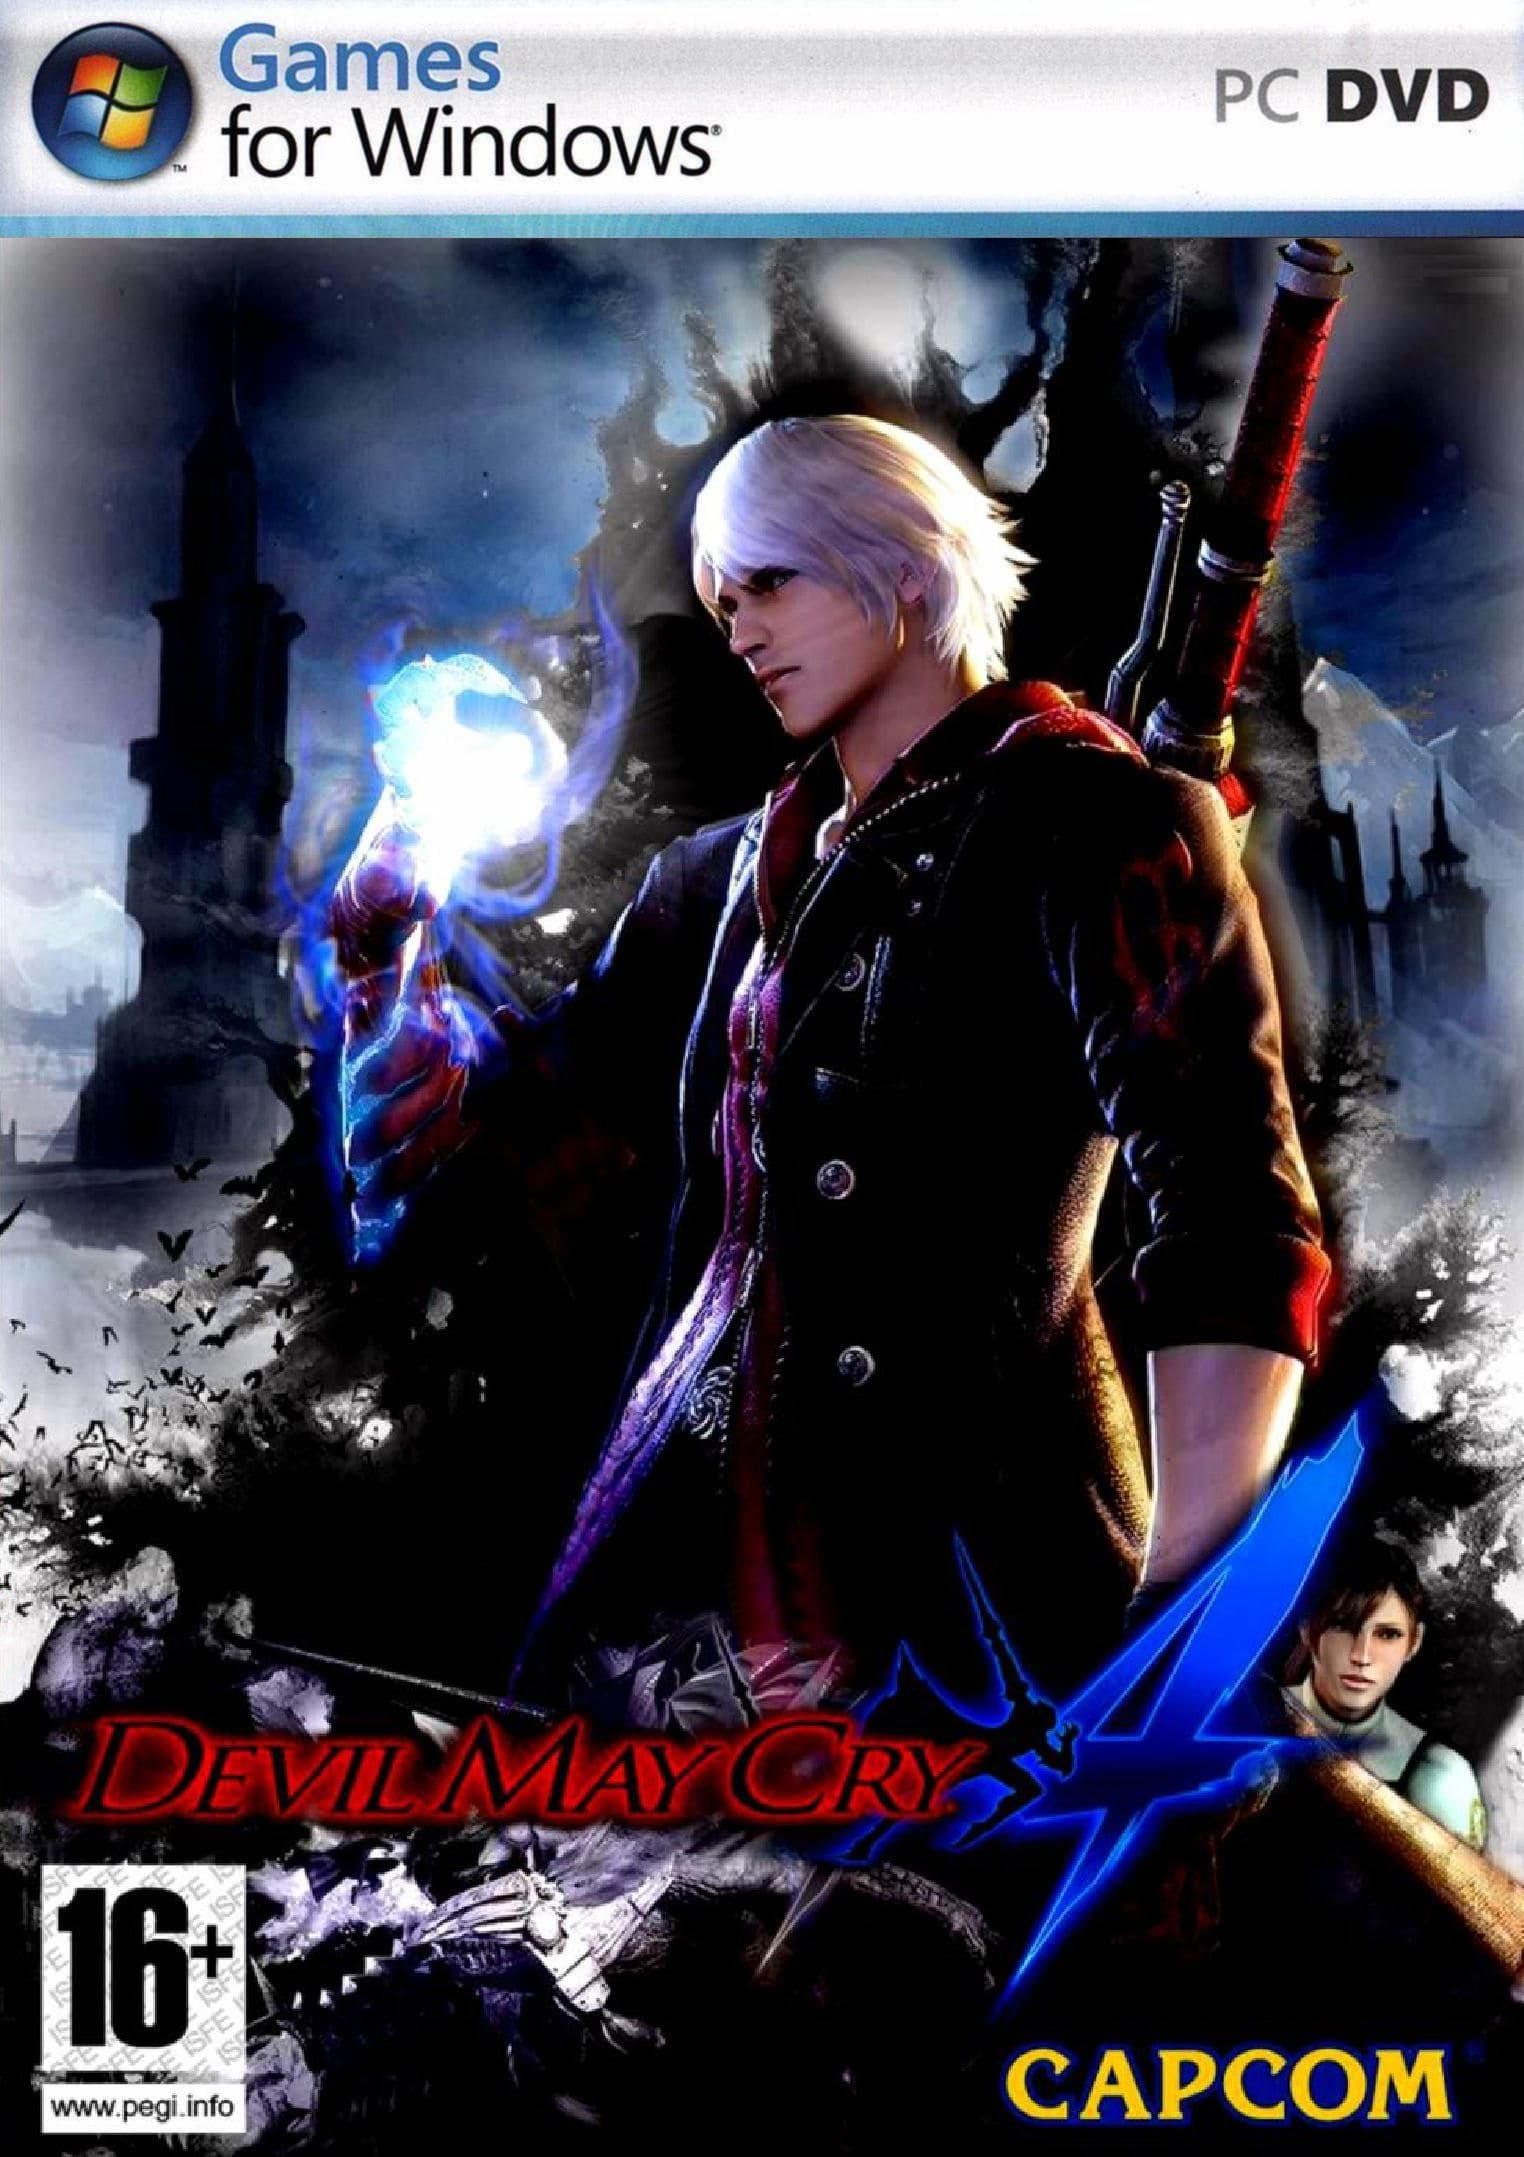 Download Gratis Devil May Cry 4 Special Edition Full Version